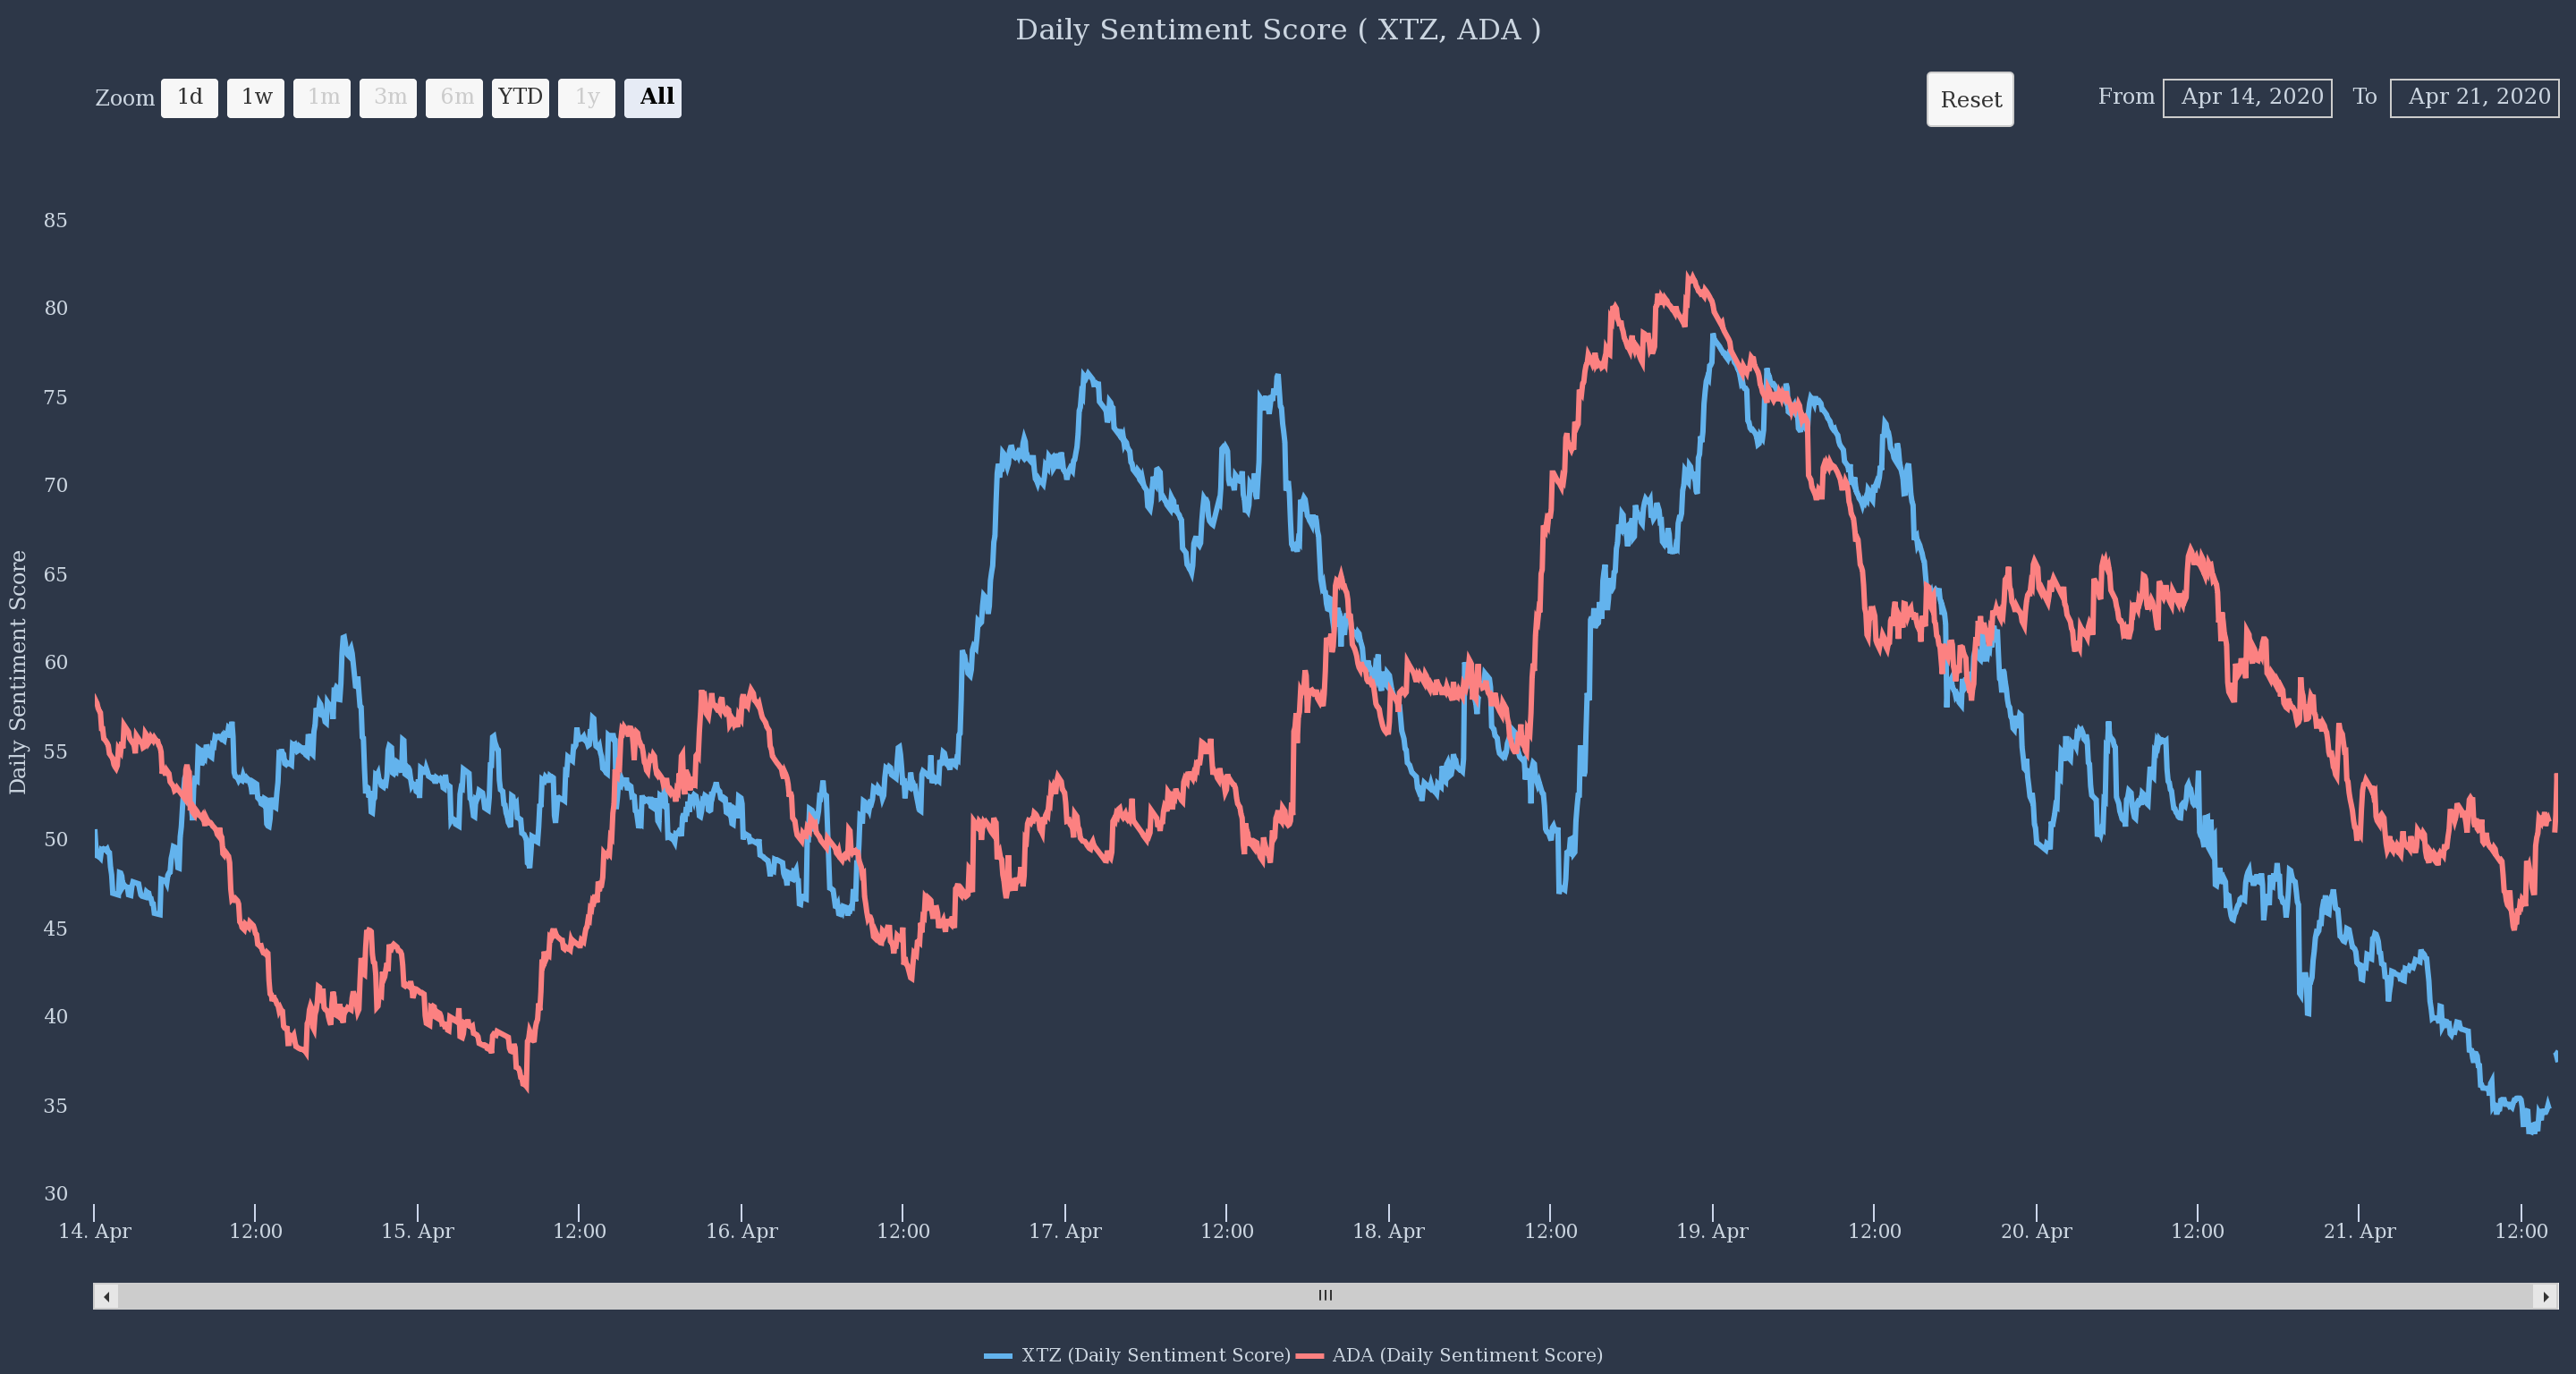 Tezos and Cardano Daily Sentiment Score by The TIE